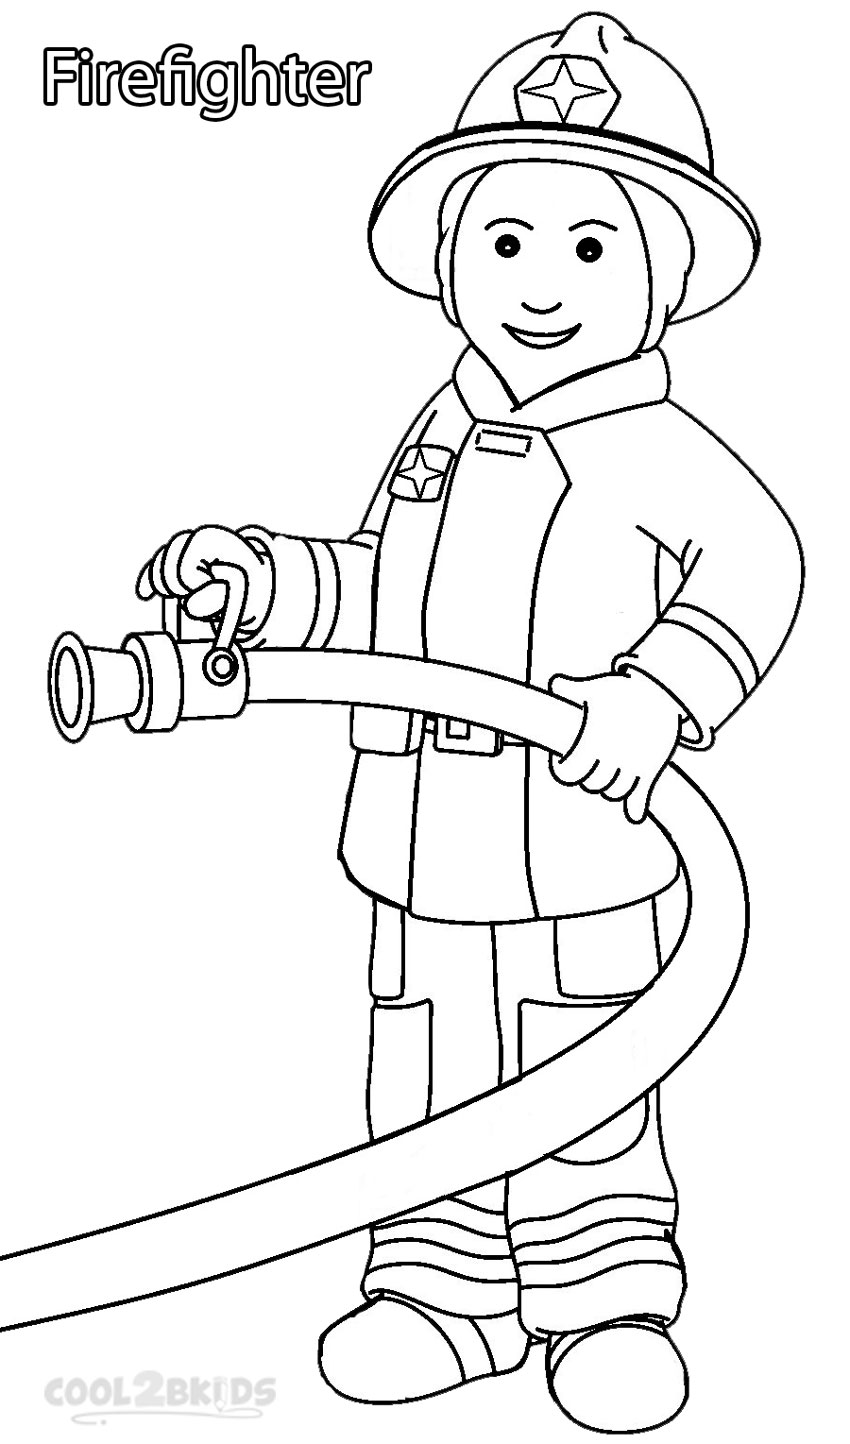 coloring community helpers images 24 exclusive image of community helpers coloring pages coloring helpers community images